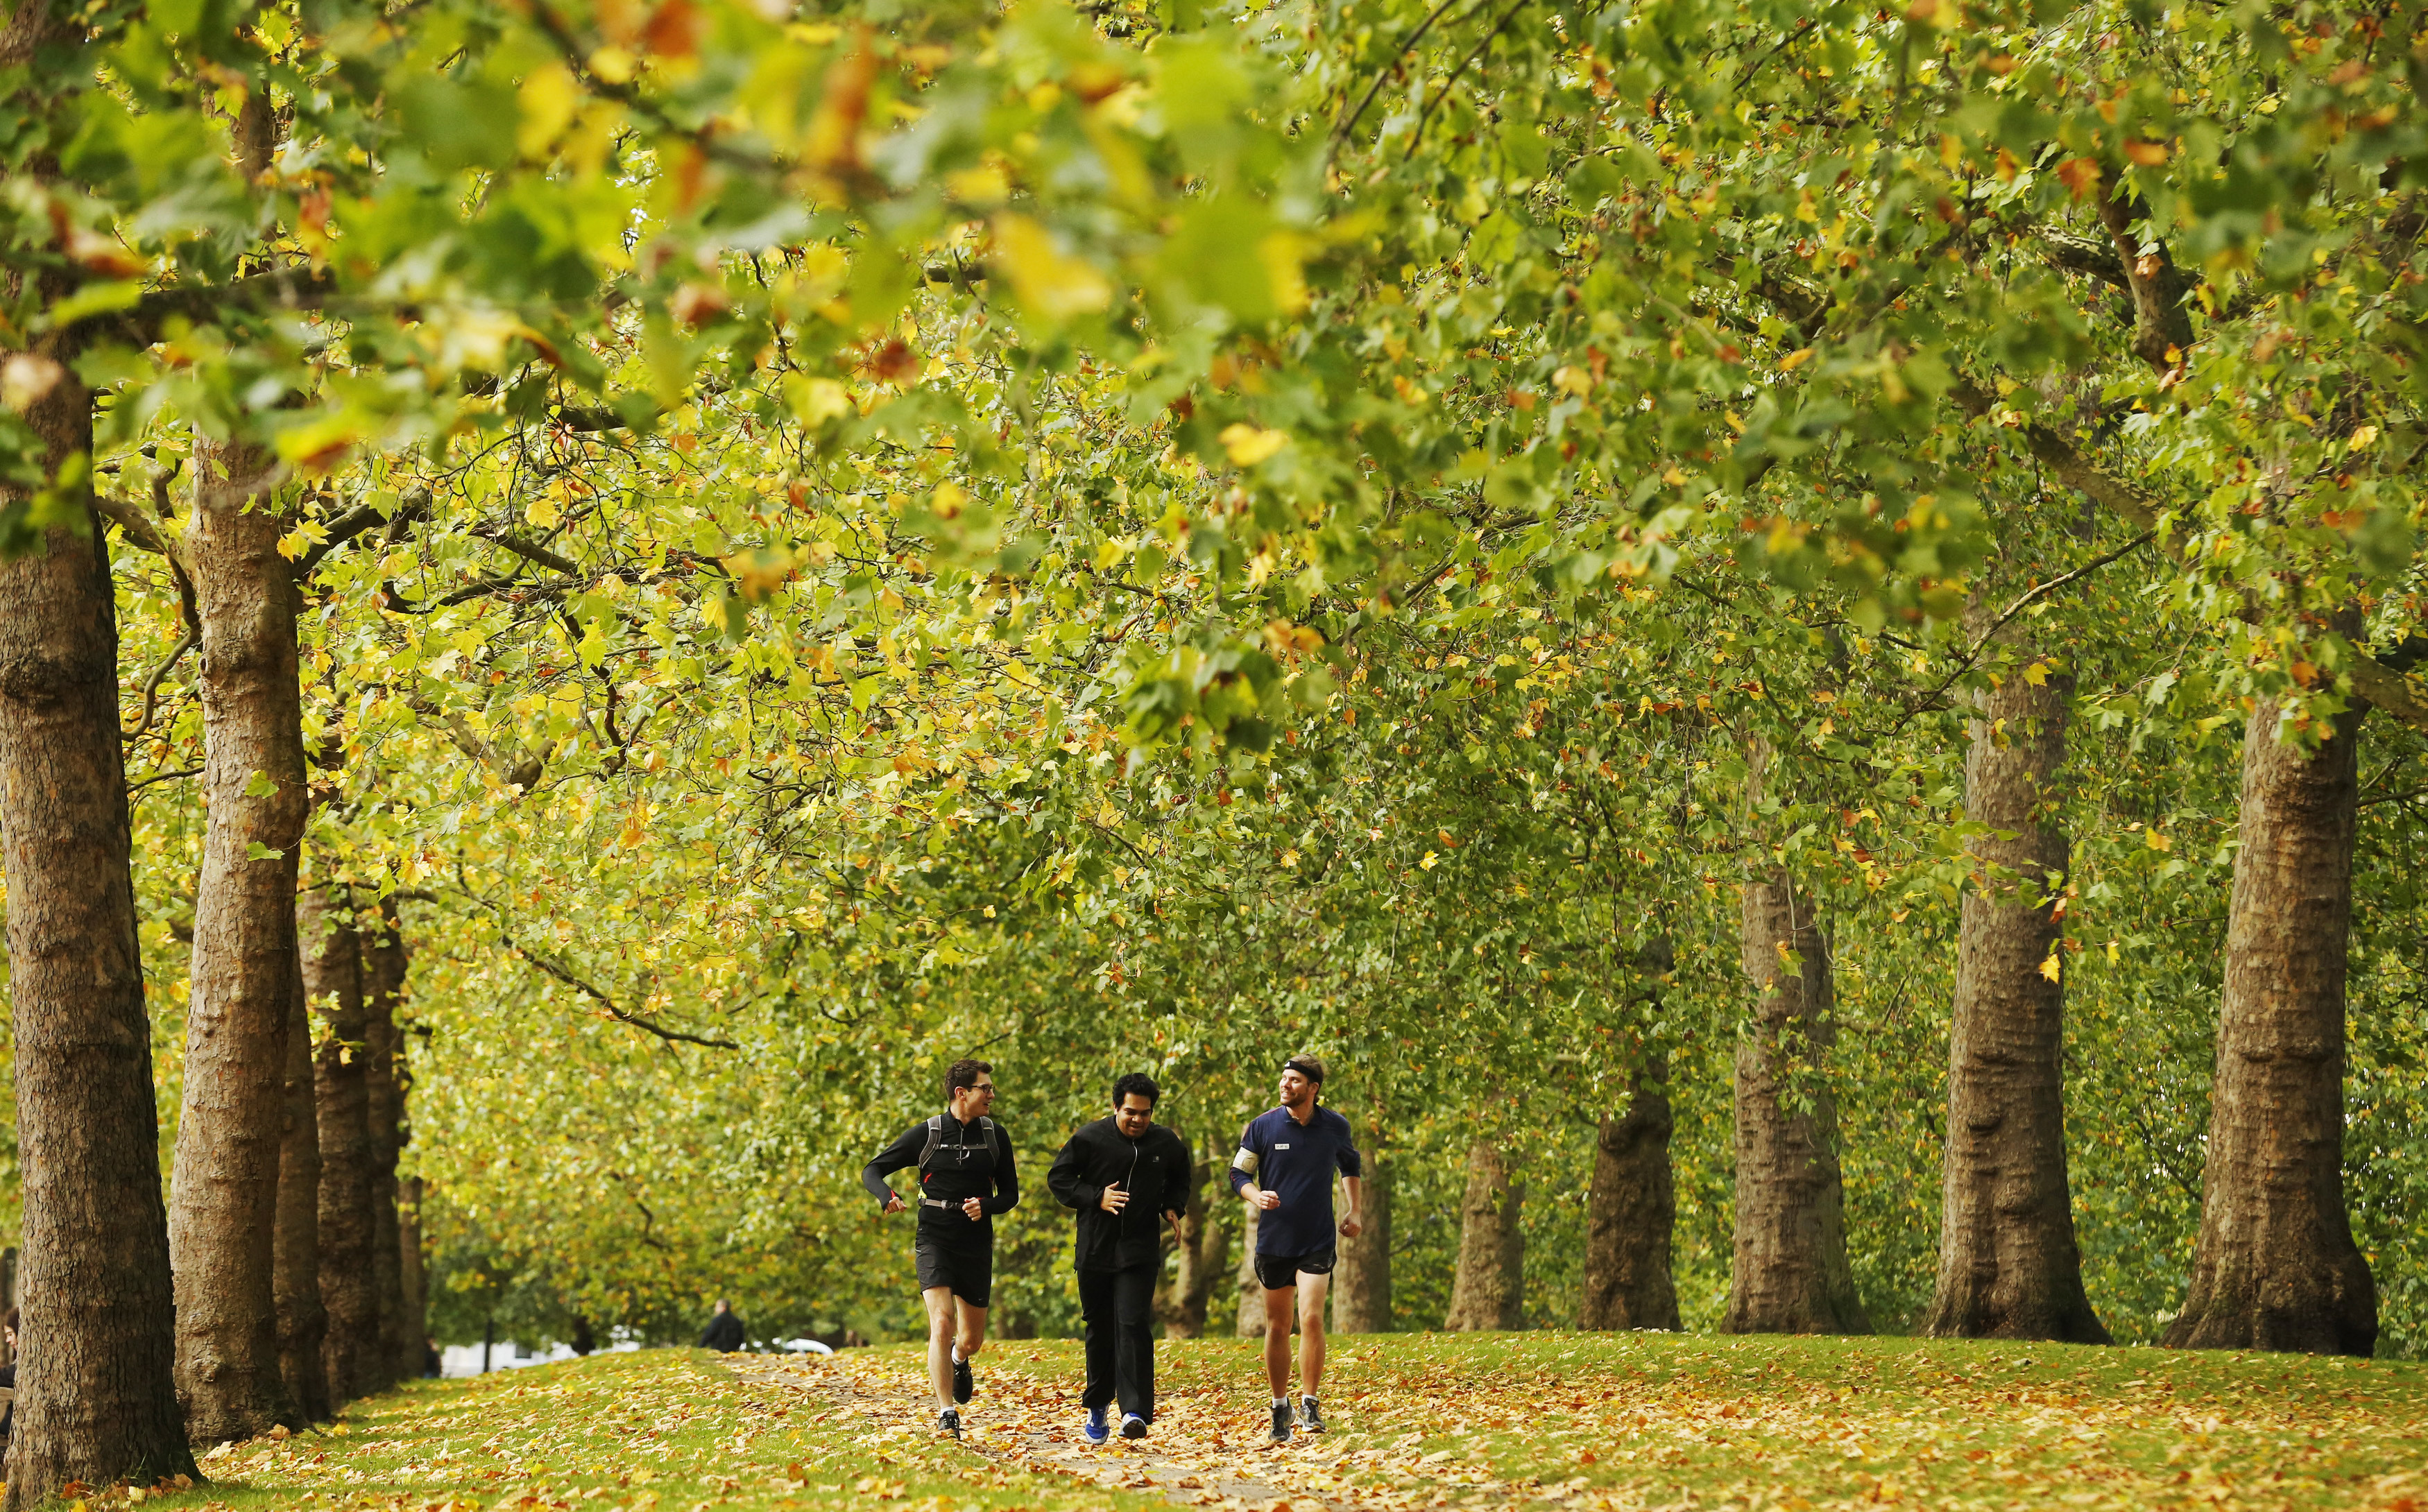 Joggers run along an avenue of trees during autumn at St James's Park in London